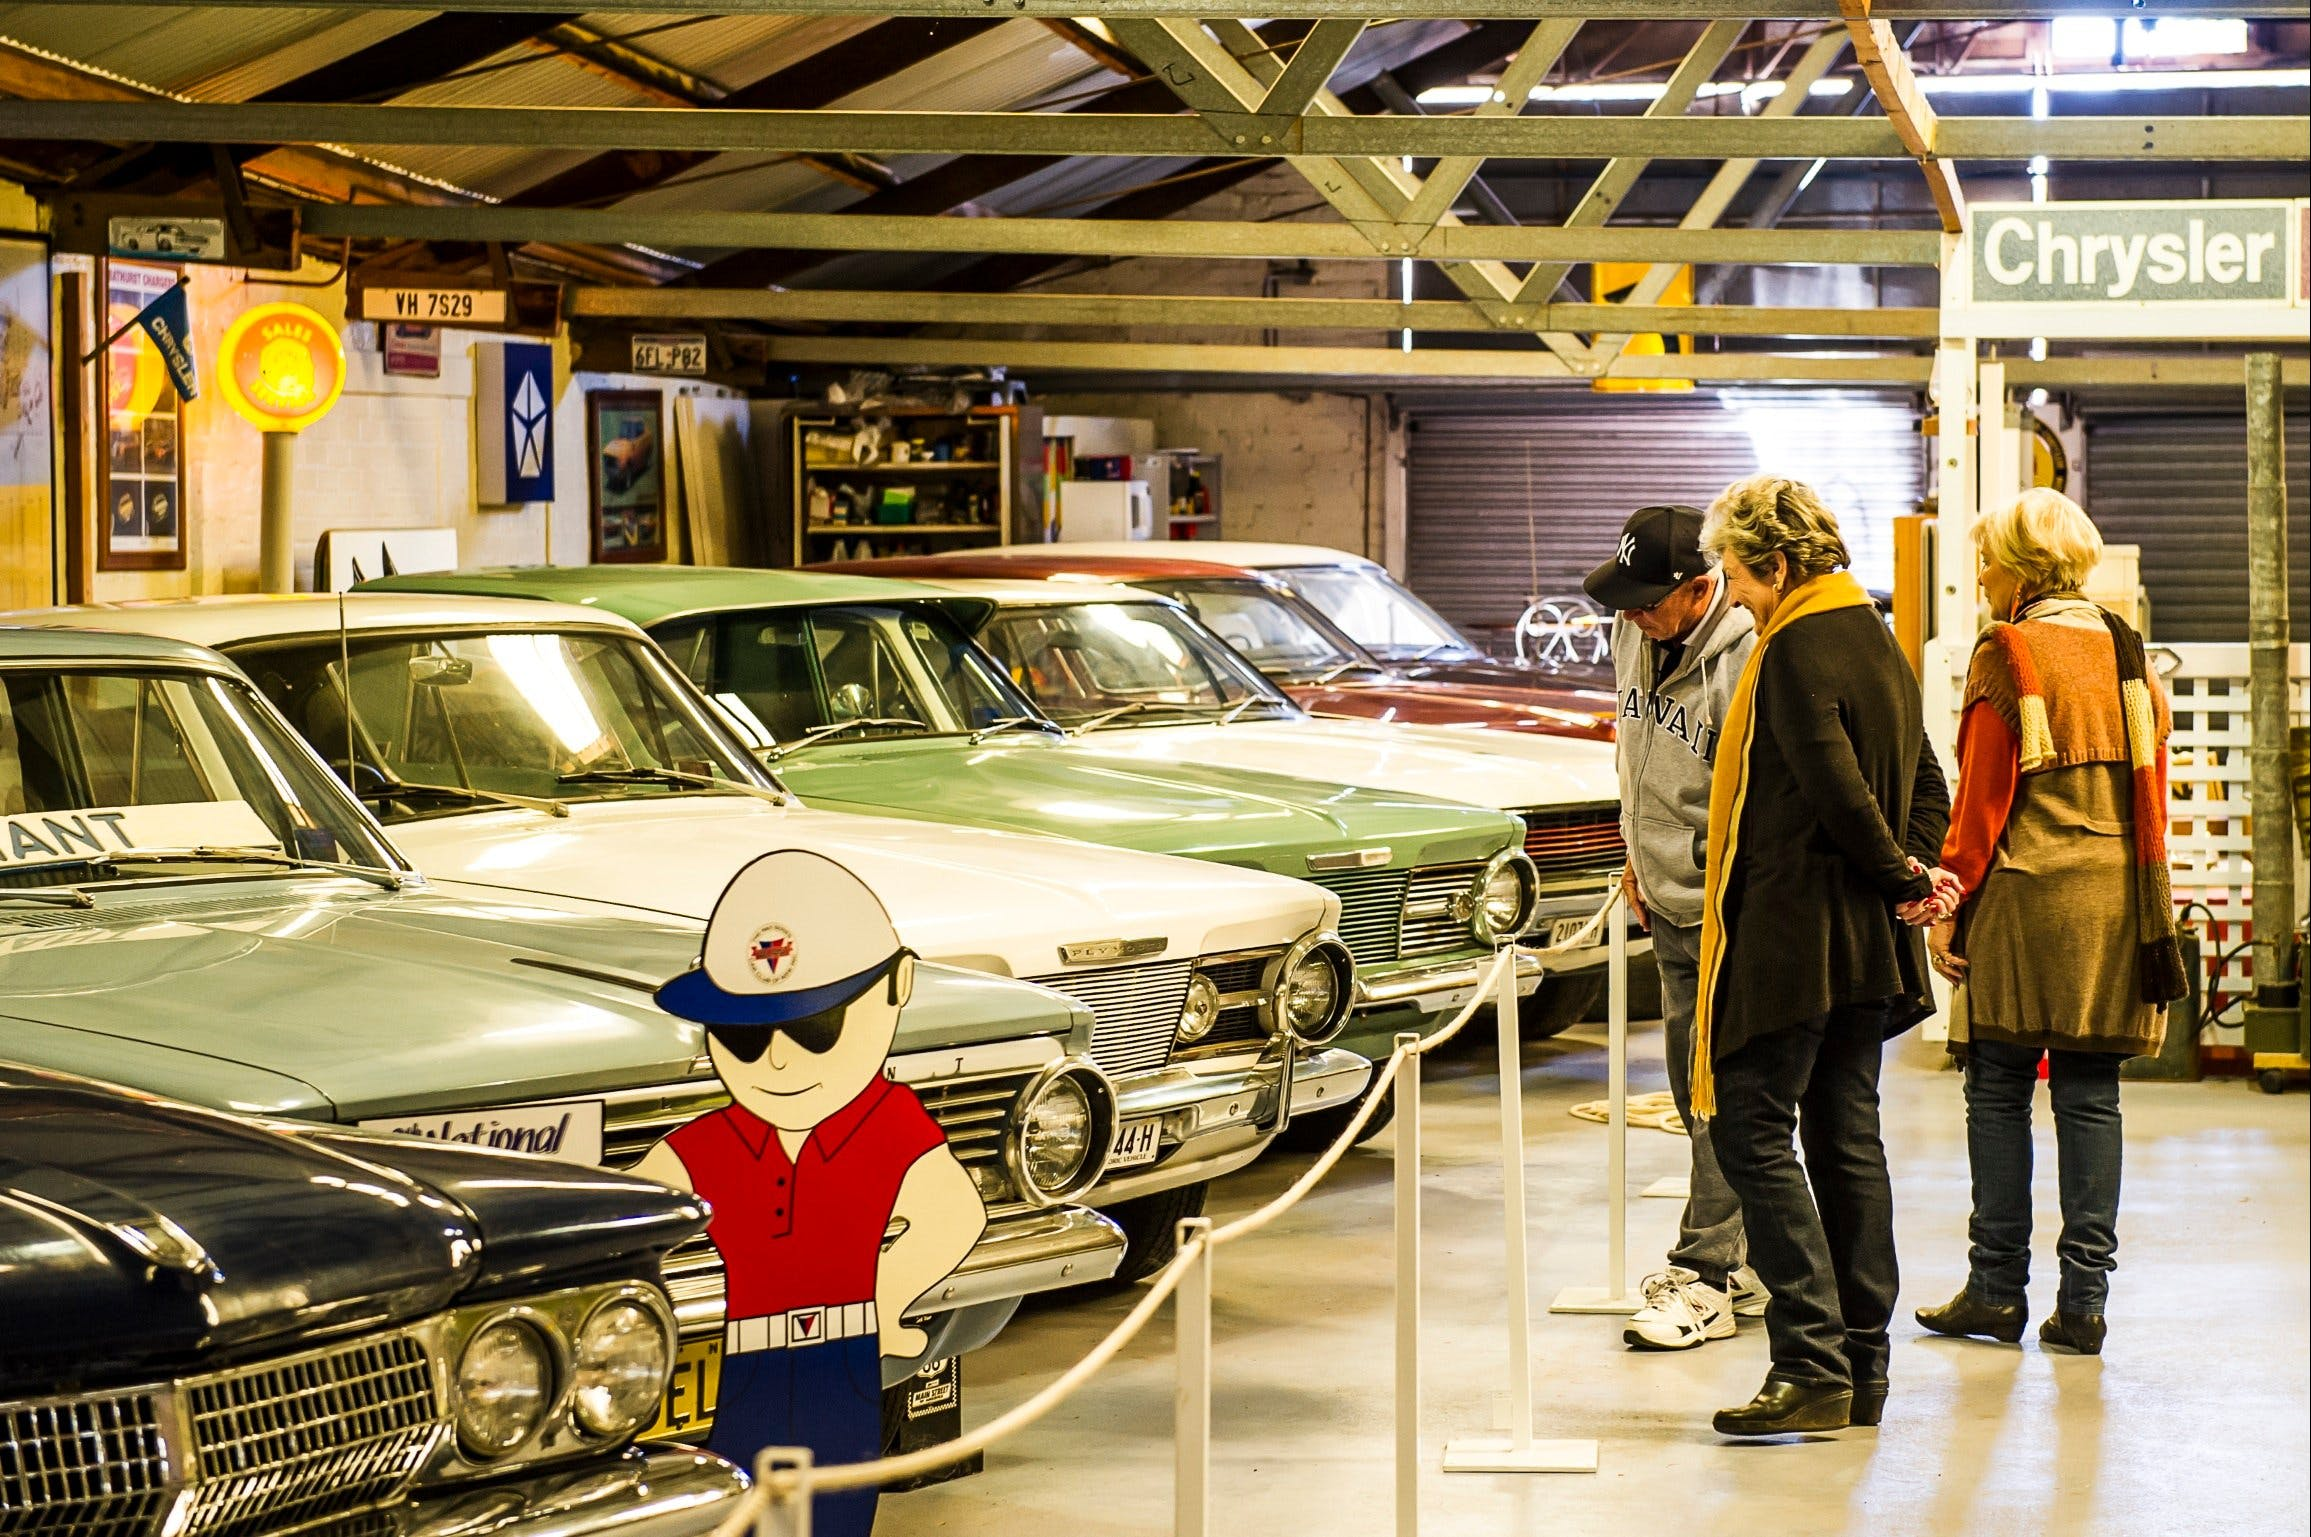 Chrysler Car Museum - Accommodation Fremantle